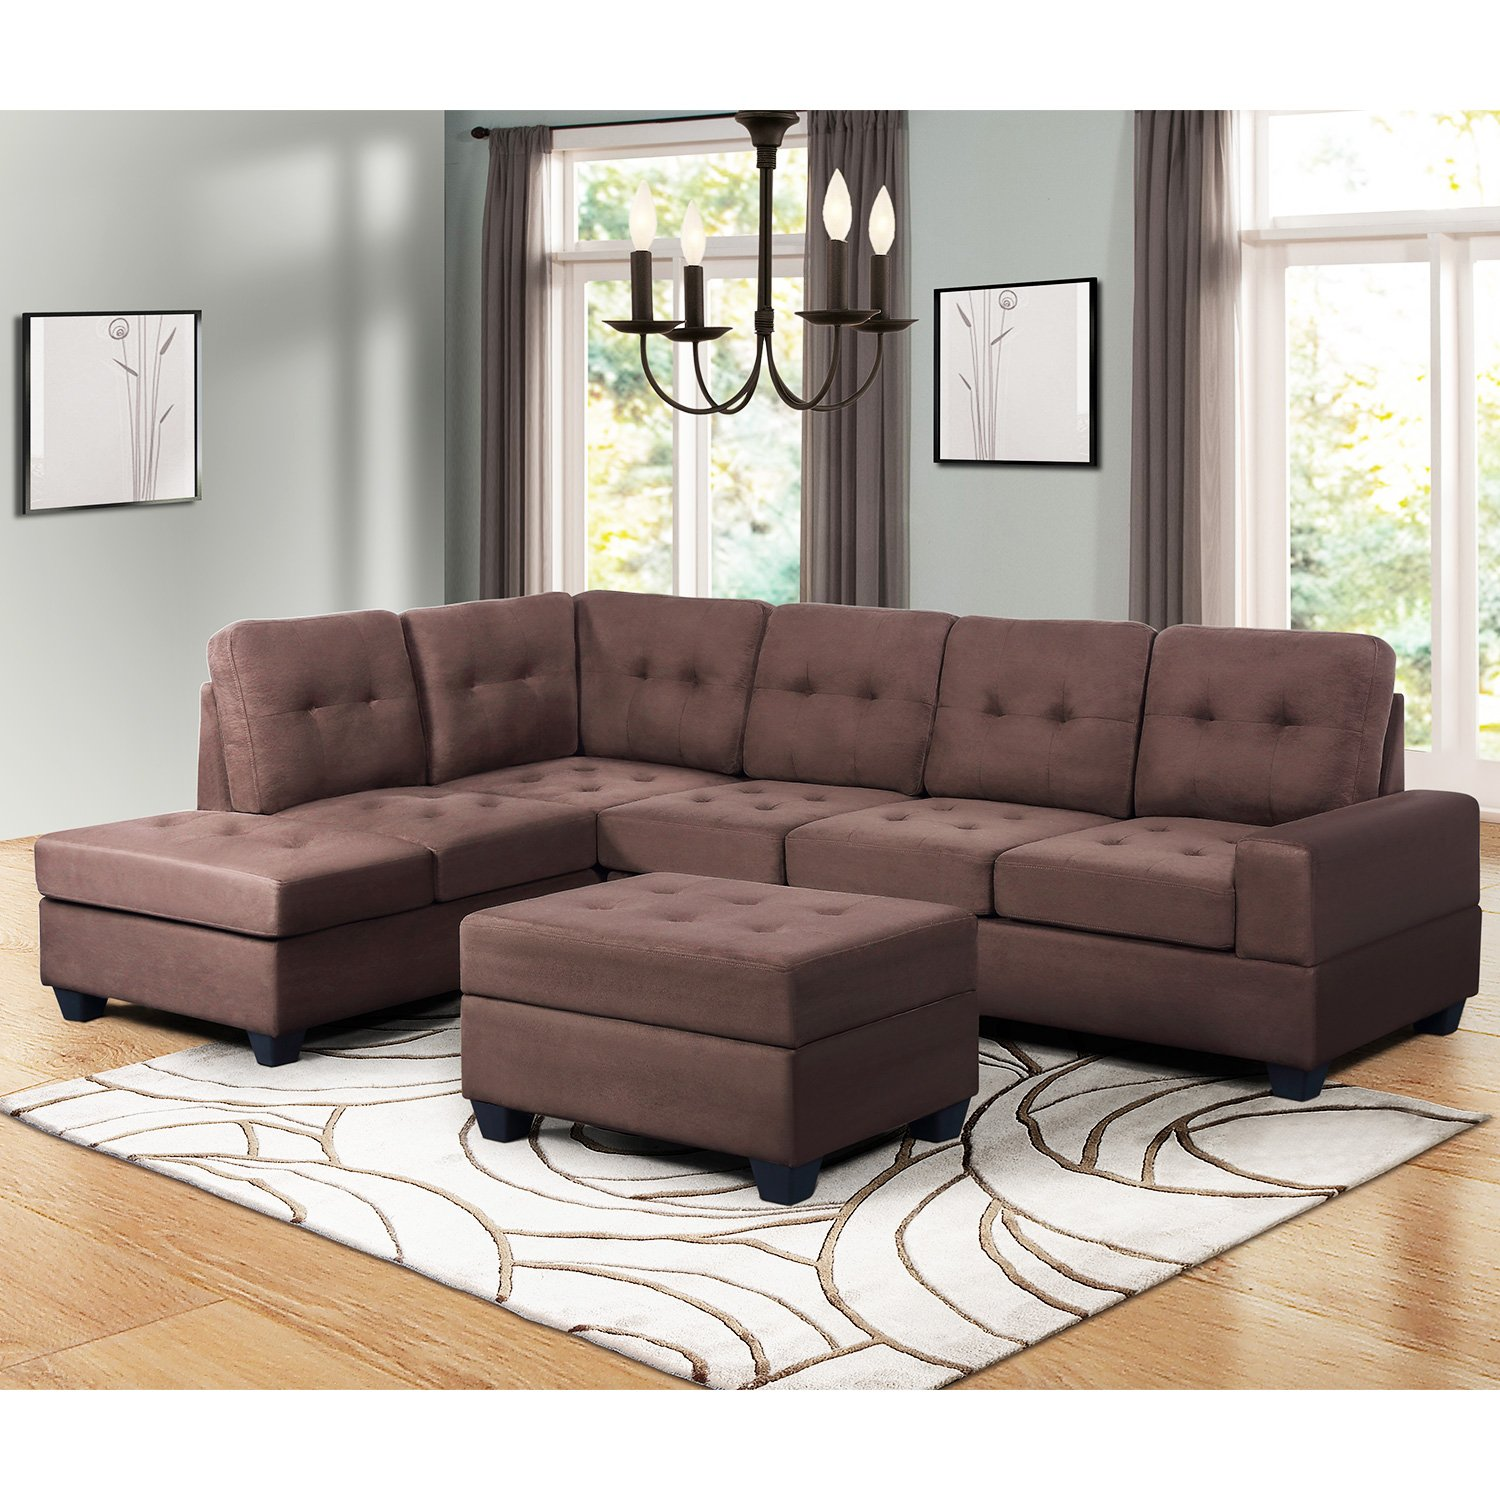 Tremendous Harper Bright Designs Sectional Sofa 3 Piece Sofa Sets Couches With Reversible Chaise Lounge Storage Ottoman And Cup Holders For Living Room Brown Squirreltailoven Fun Painted Chair Ideas Images Squirreltailovenorg